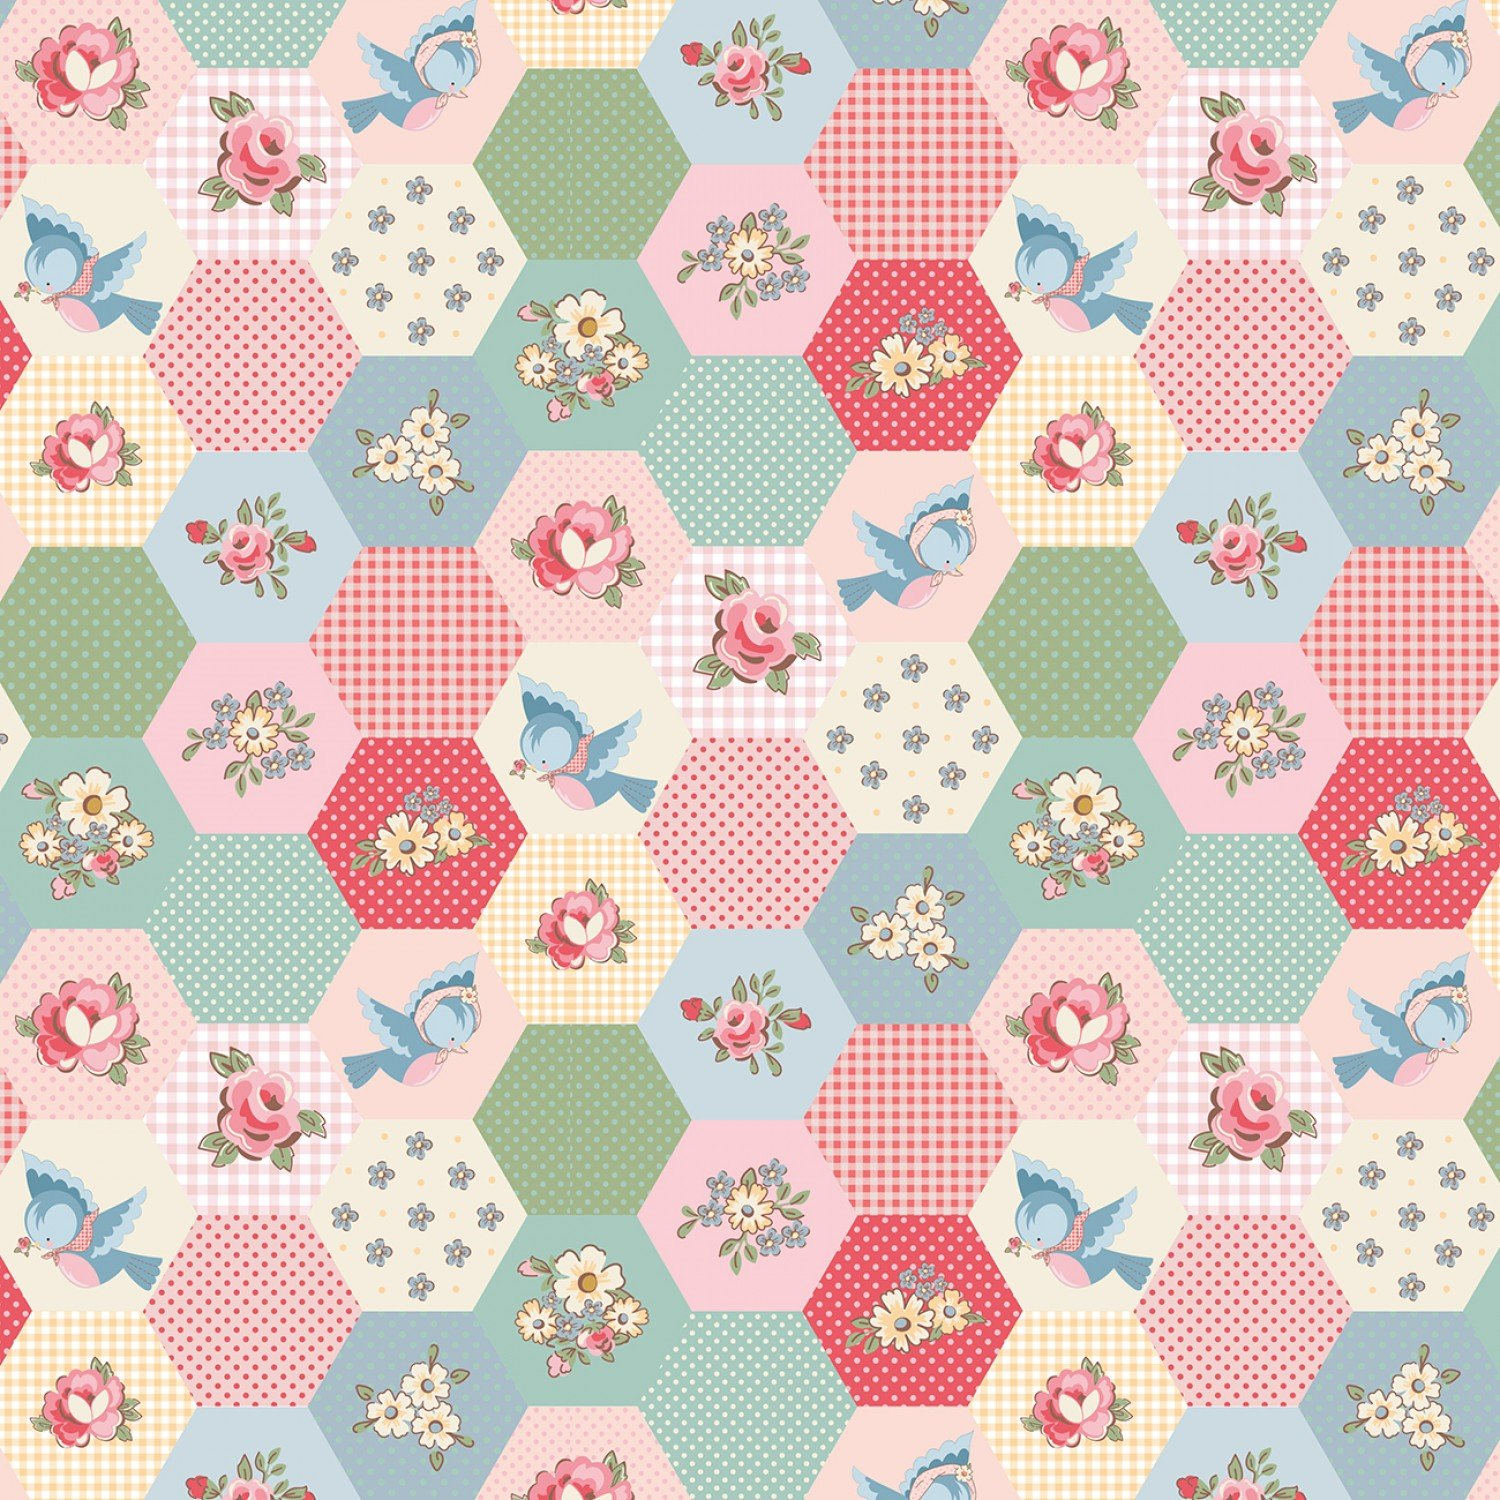 Dots and Posies Birds & Hexies Multi fabric by Poppie Cotton DP20421